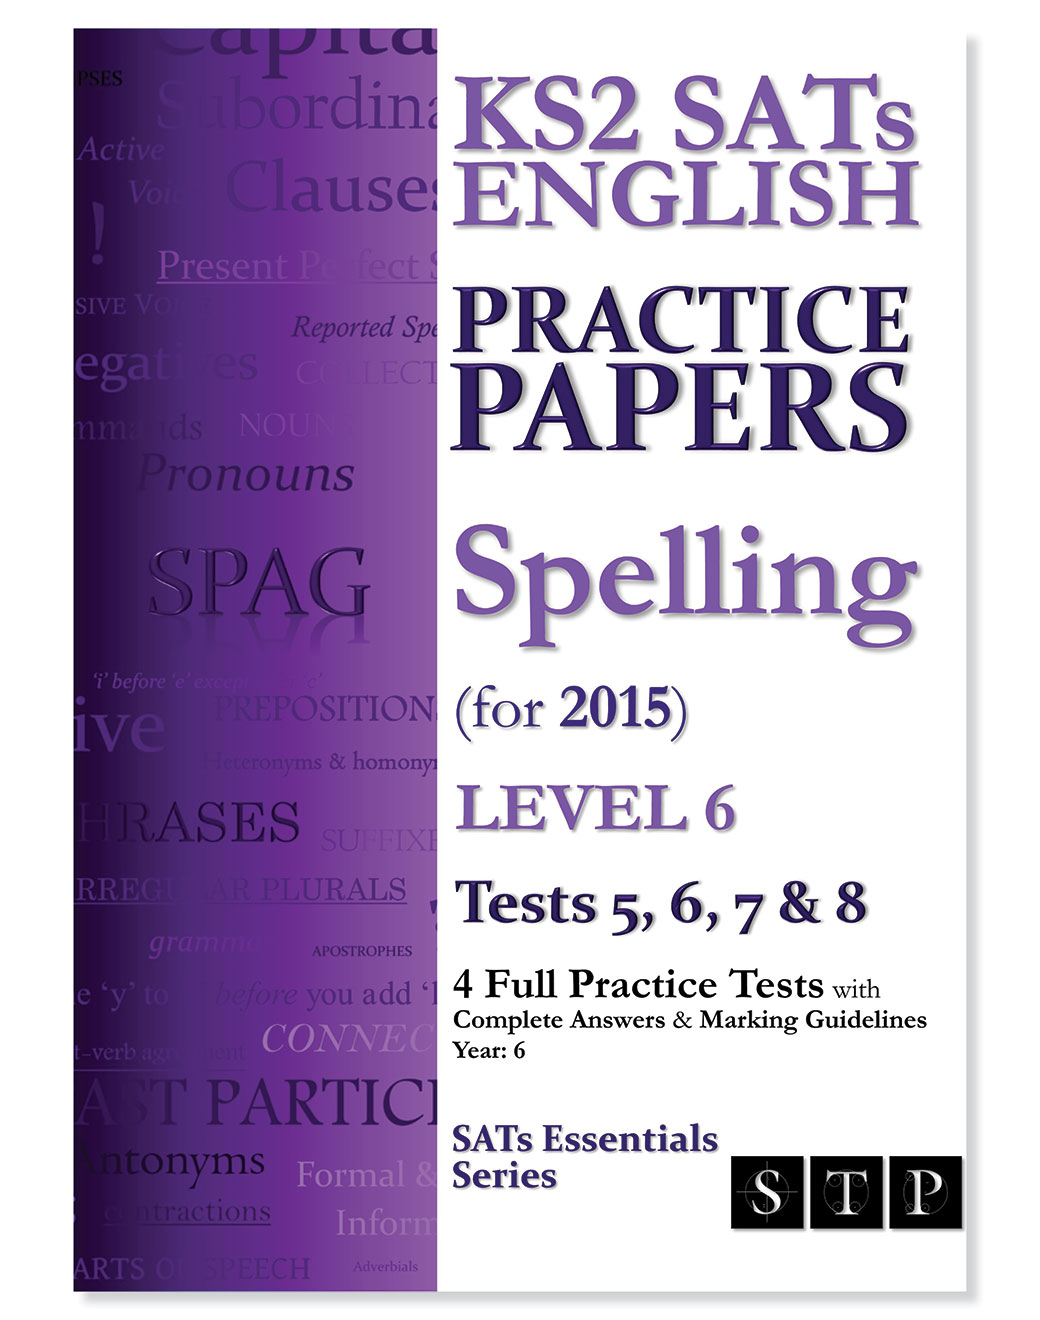 STP Books KS2 SATs English Practice Papers: Spelling (for 2015) Level 6: Tests 5, 6, 7 & 8 (Year 6)